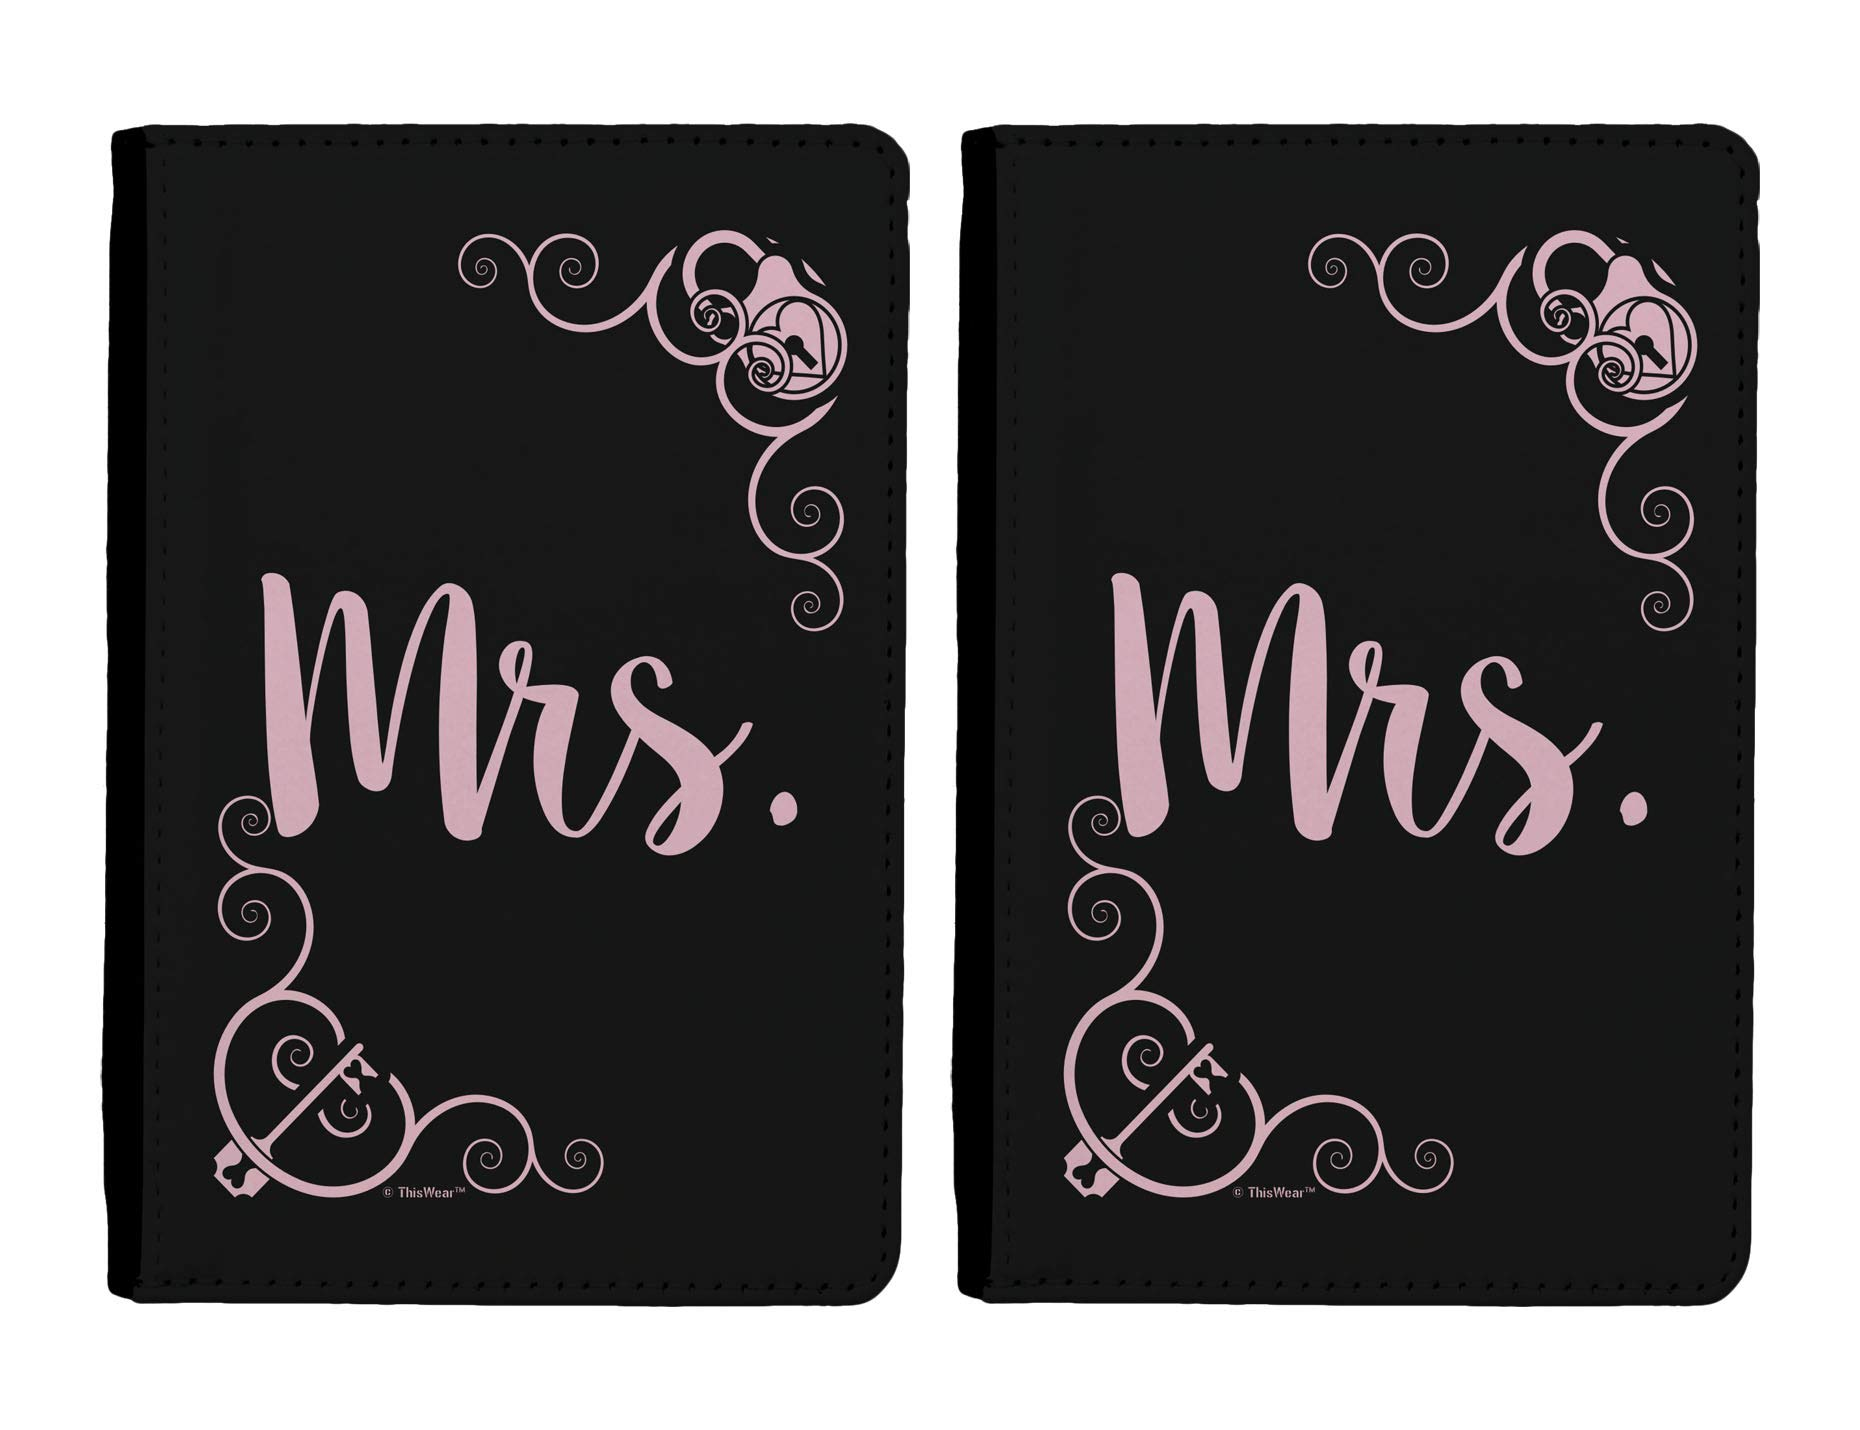 Travel Gifts for Women Mrs Wedding Gift Set 2-pack Full Color Passport Covers Wallet Black & Pink